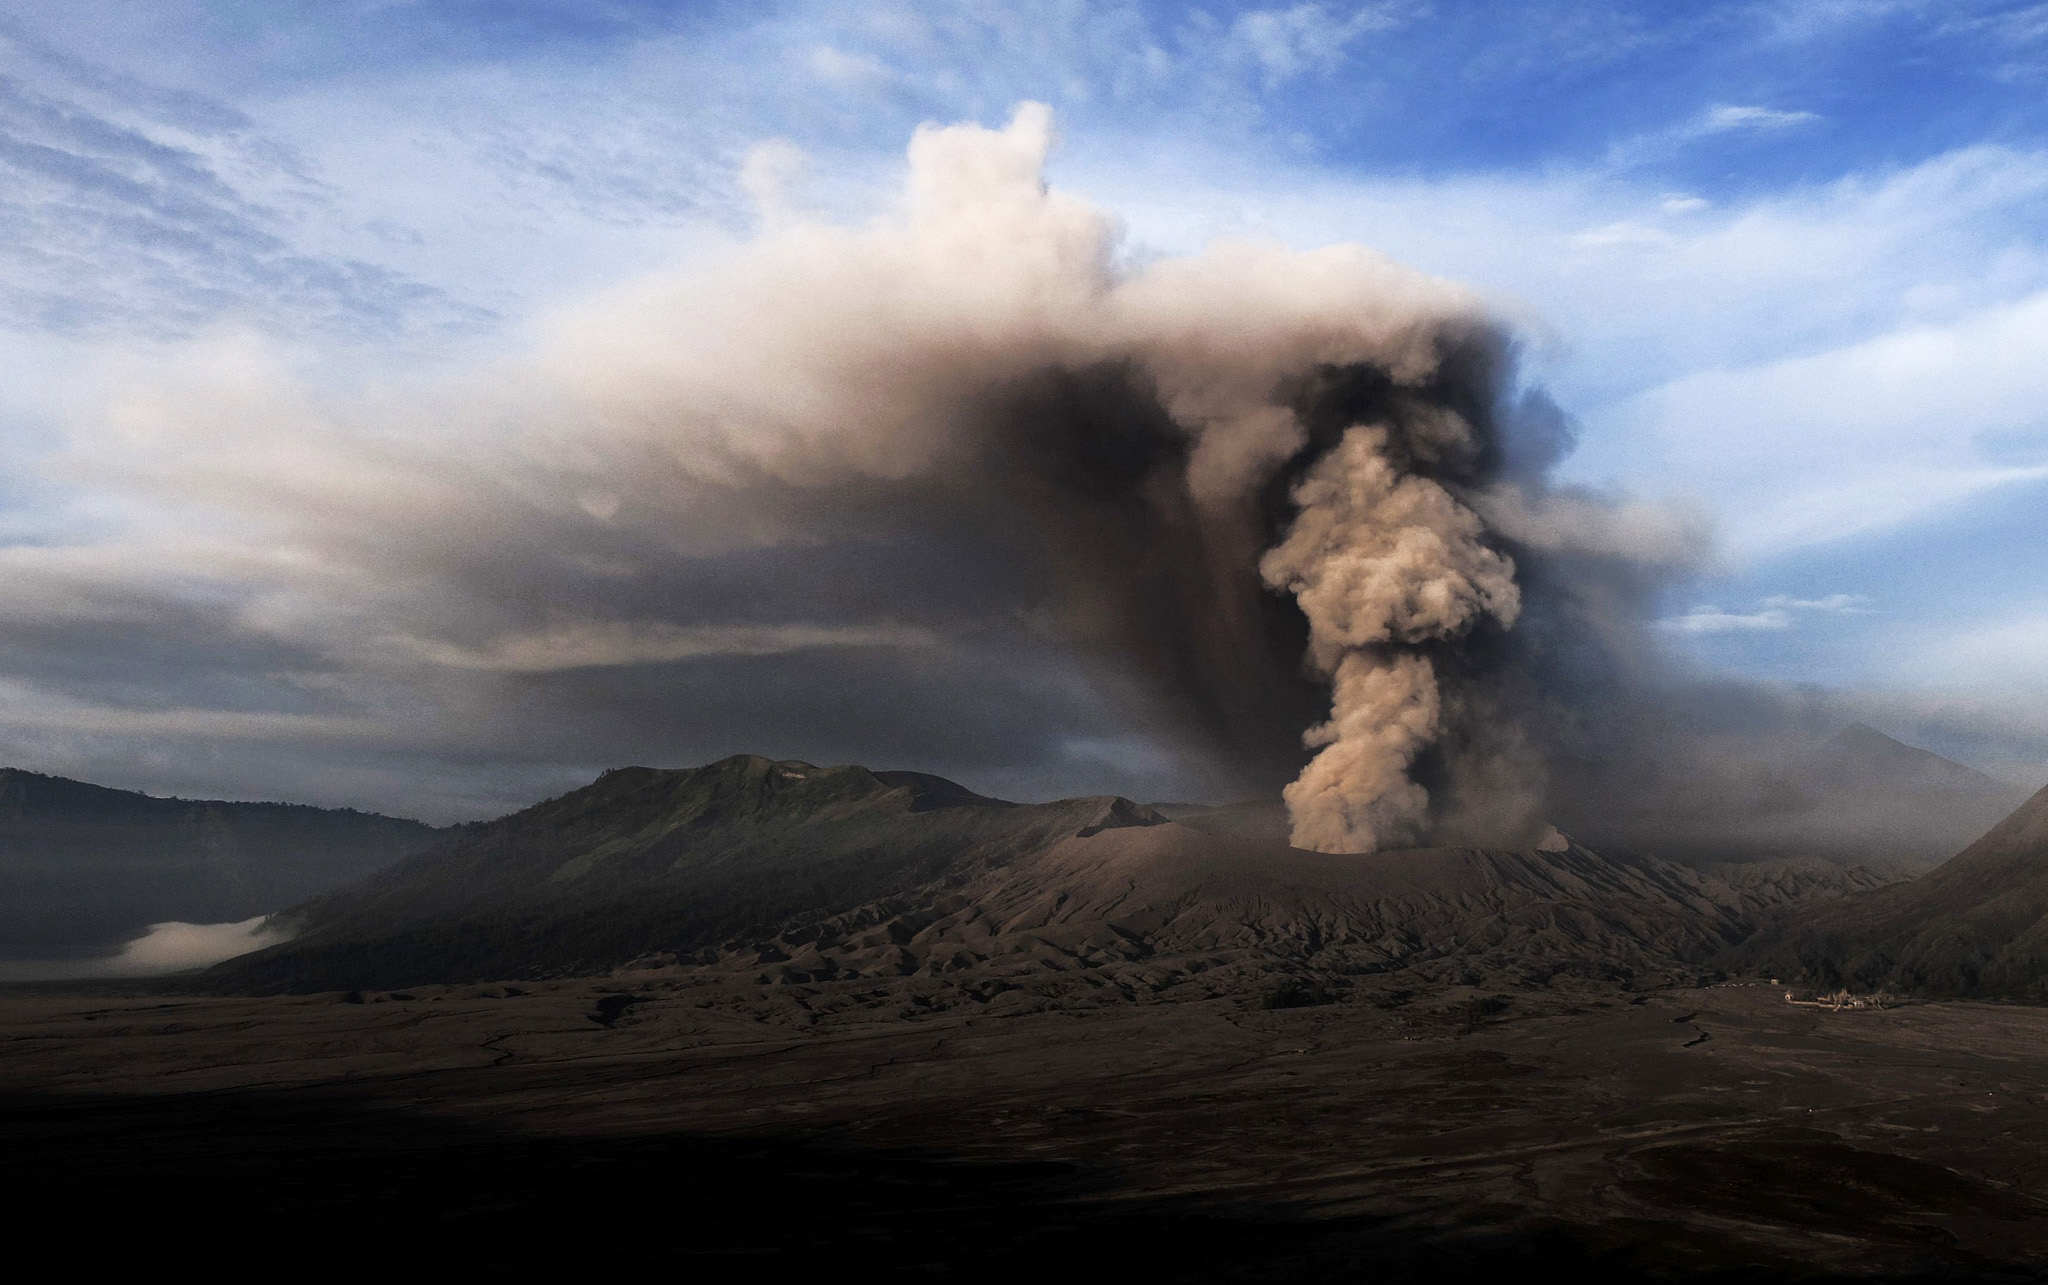 TOPSHOT - In this photo taken from Probolinggo in Indonesia's East Java province, Mount Bromo spews ashes into the air during a volcanic eruption on July 13, 2016. The volcano spewed a column of ash by up to 1,200 meters into the sky and forced the closing all activities at the nearby Abdurrahman Saleh airport in Malang district, according to local reports stating the national disaster management agency. Bromo lies within Bromo-Tengger-Semeru National Park, a huge caldera containing several volcanoes. / AFP PHOTO / BAY ISMOYOBAY ISMOYO/AFP/Getty Images